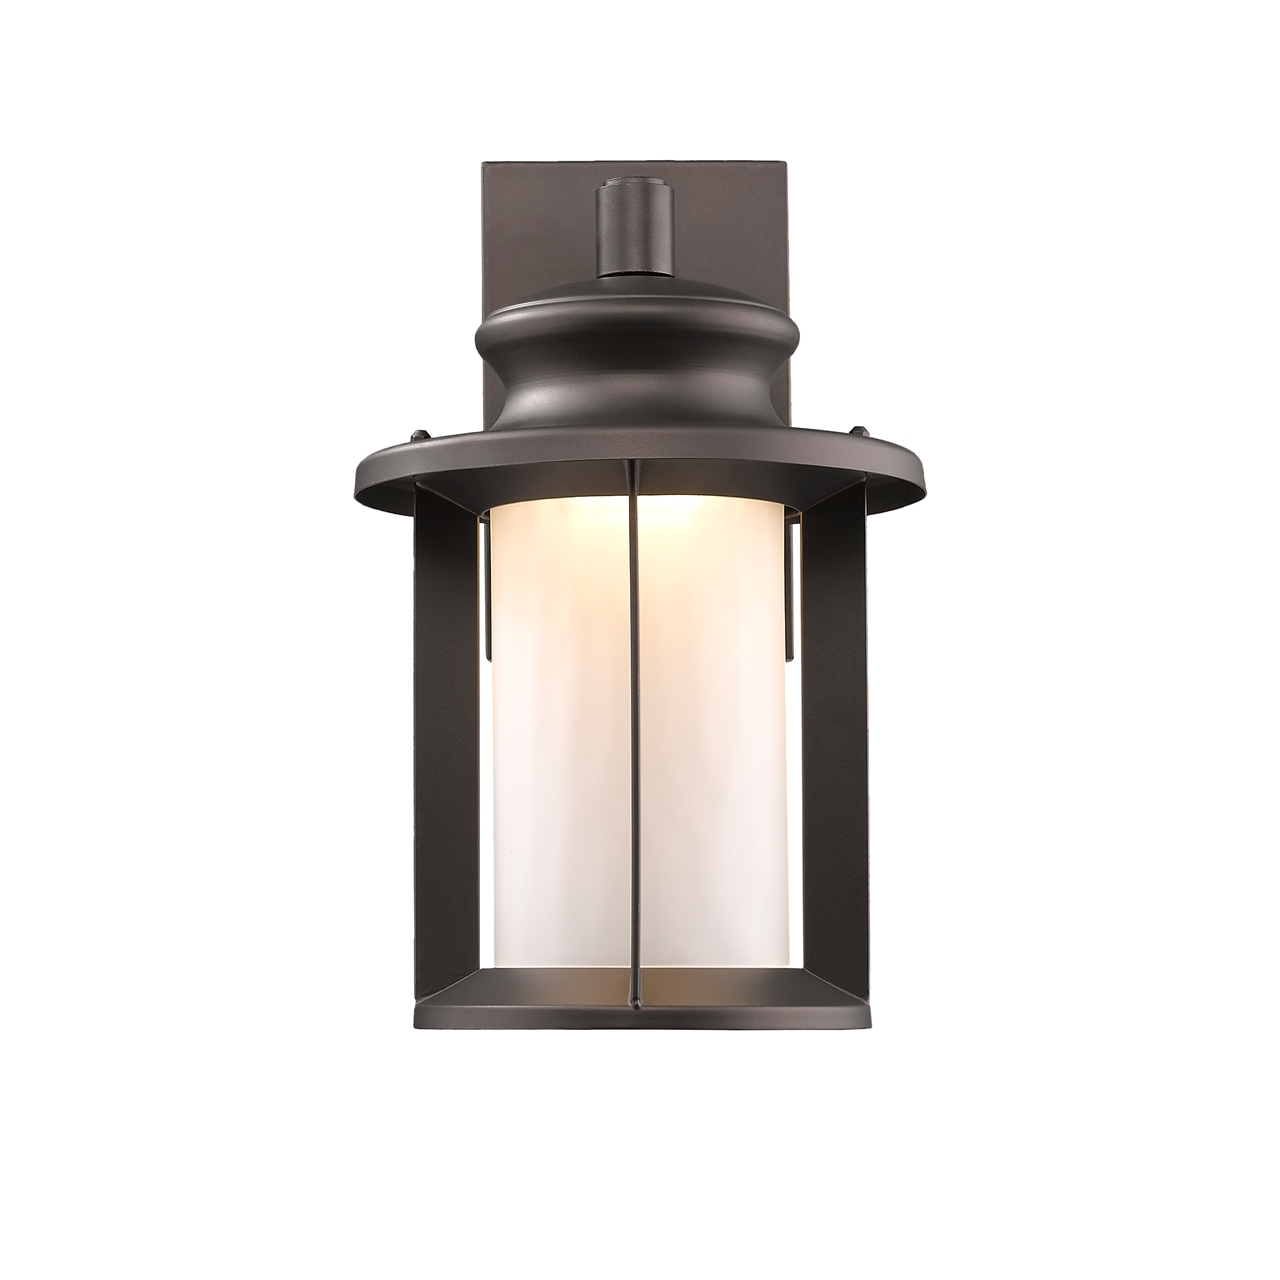 CHLOE Lighting, Inc CH2S074RB14-ODL LED Outdoor Sconce on Sconce Outdoor Lighting id=35583